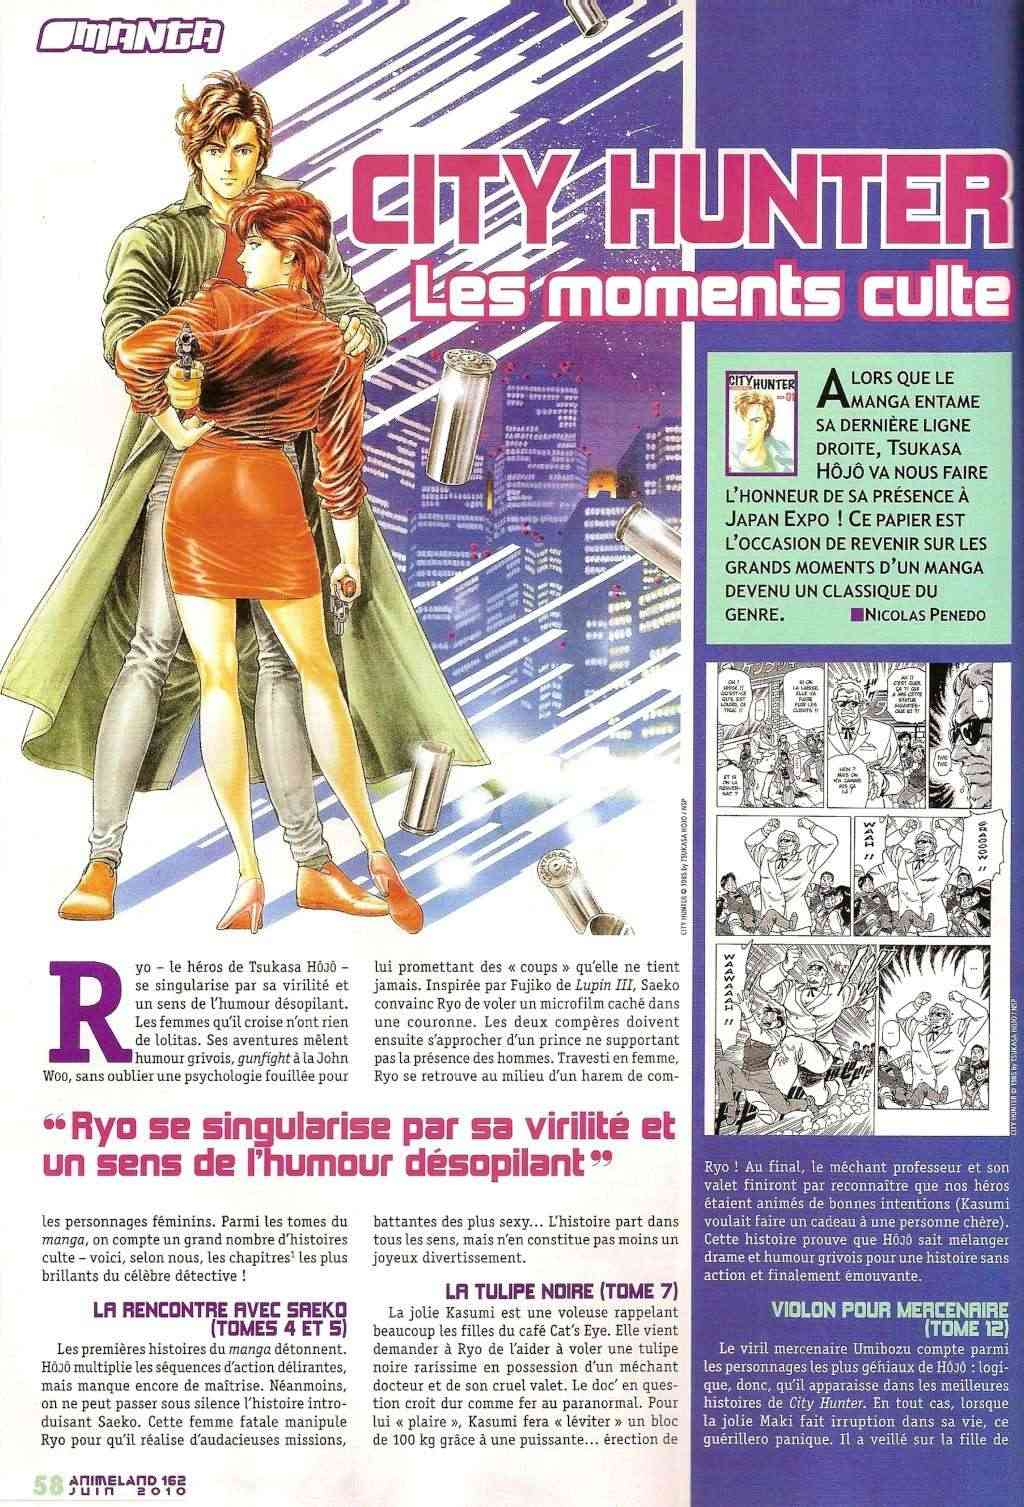 Article animeland Articl10